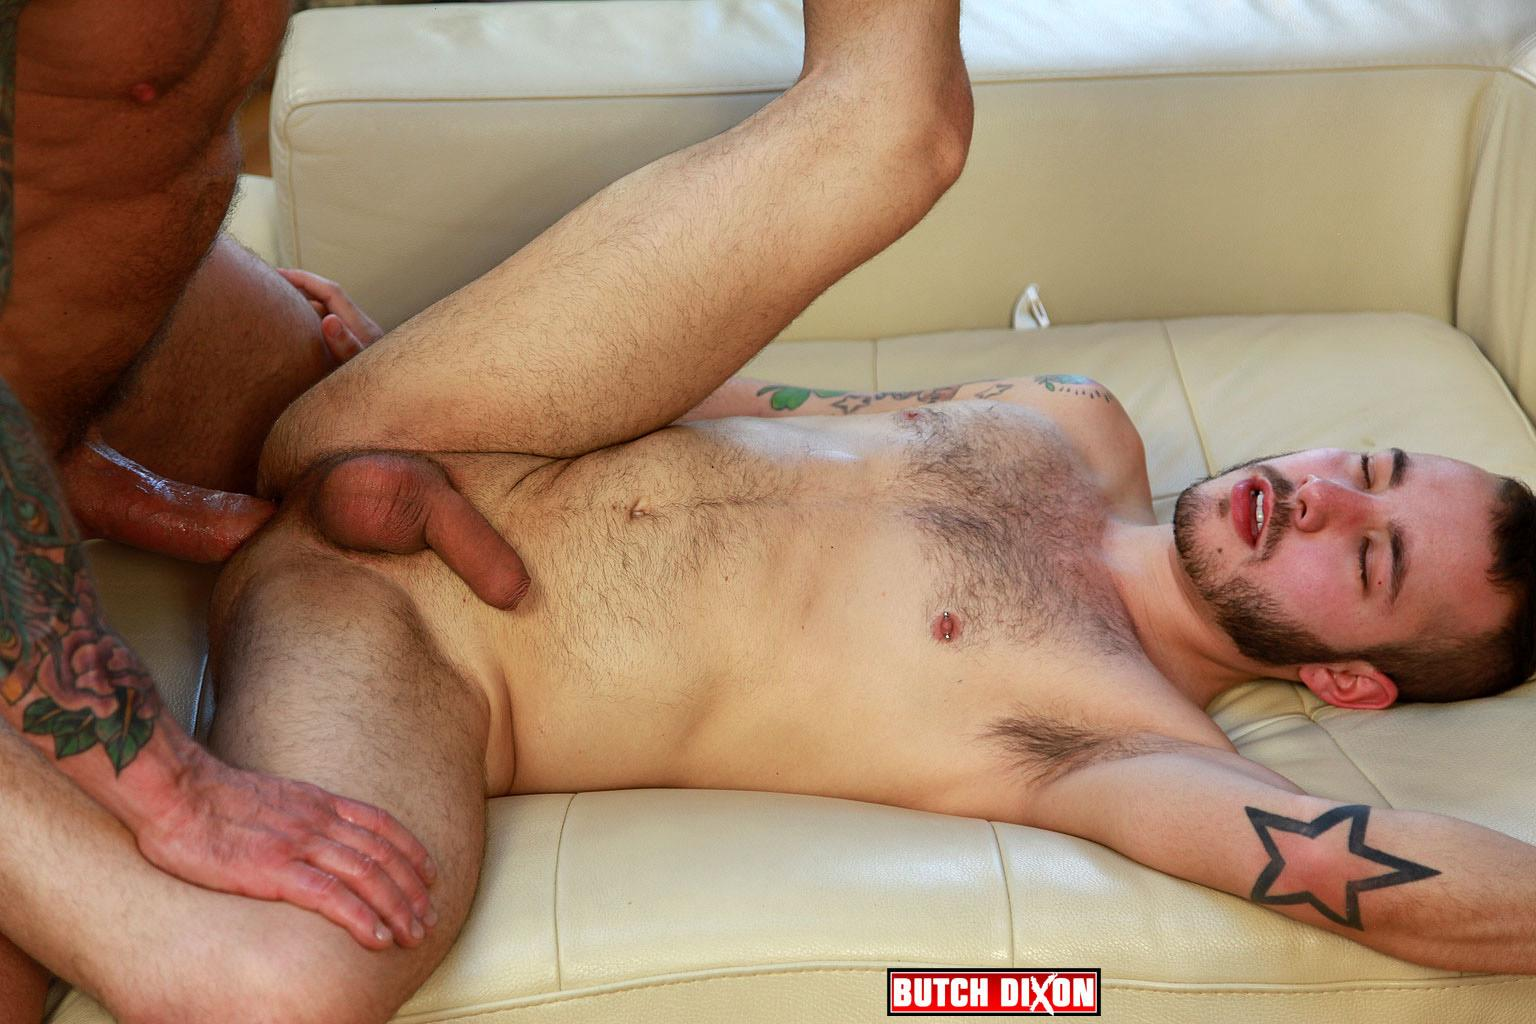 Butch-Dixon-Rocco-Steele-and-Damian-Gomez-Uncut-Cock-Guy-Gets-barebacked-by-huge-cock-daddy-Amateur-Gay-Porn-25 Uncut Cock Cub Gets Fucked By A Huge Muscle Daddy Cock